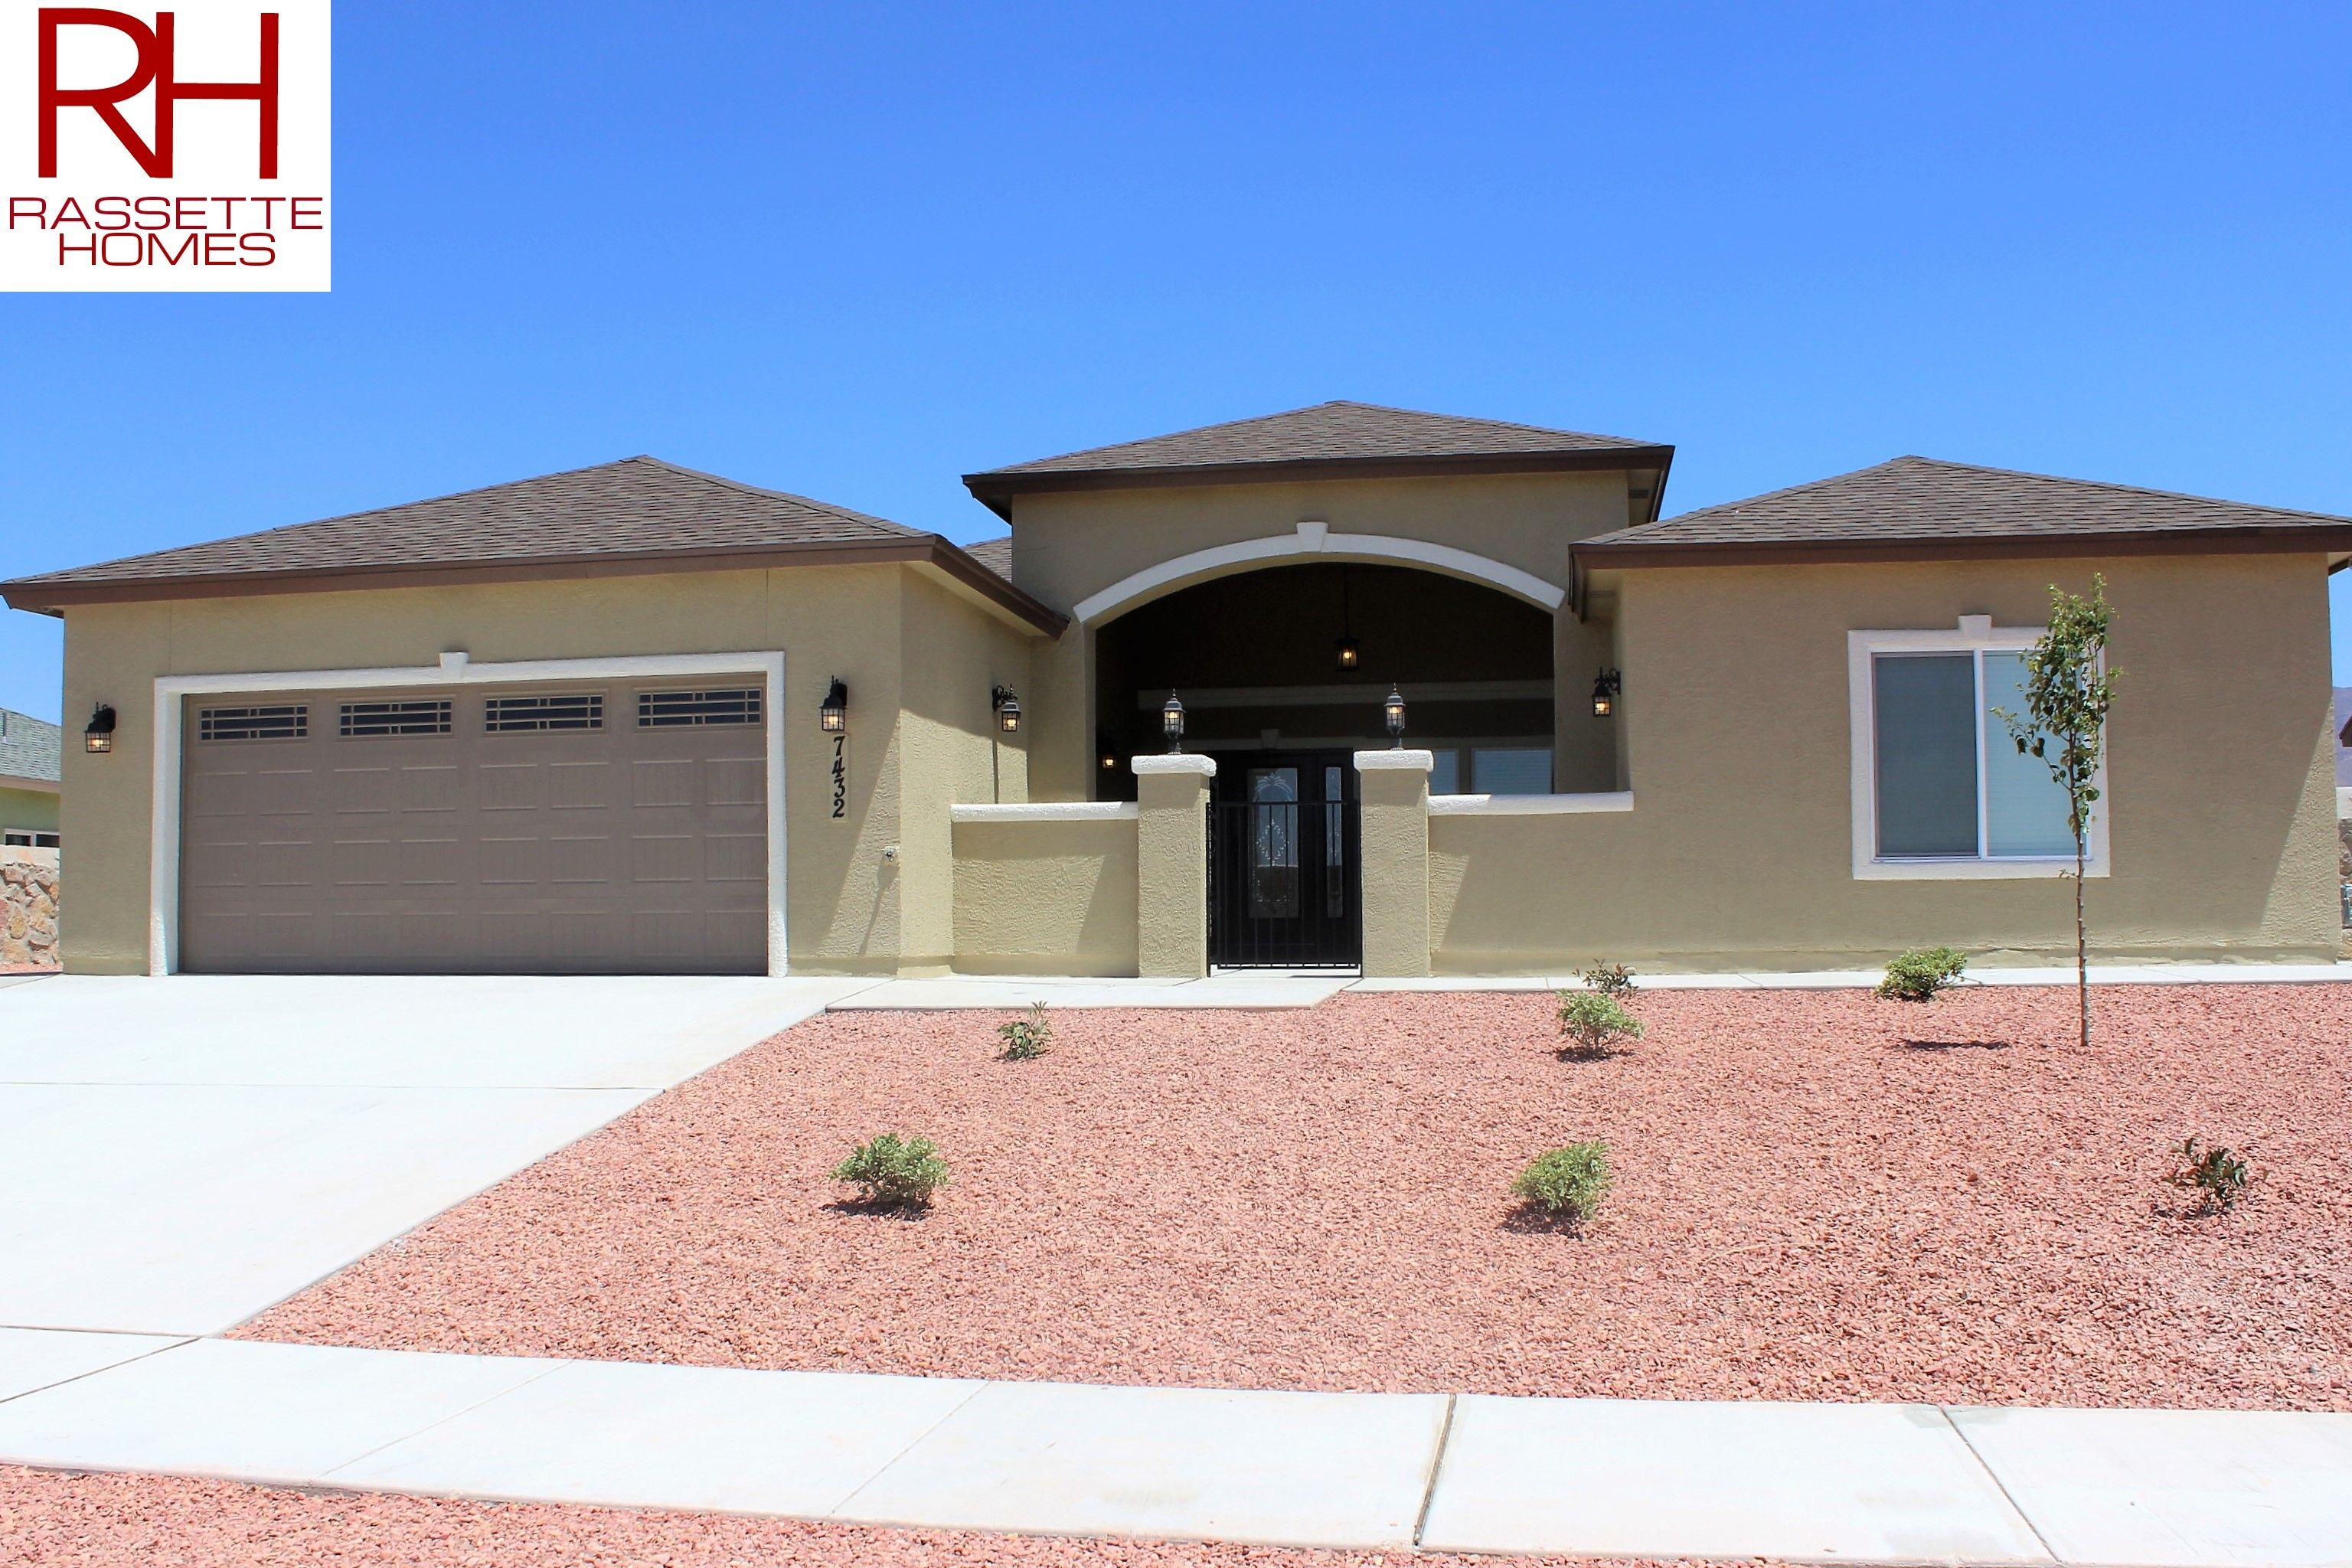 Garage Doors El Paso Texas Rassette Homes Home Builder In El Paso Tx Canutlllo Heights